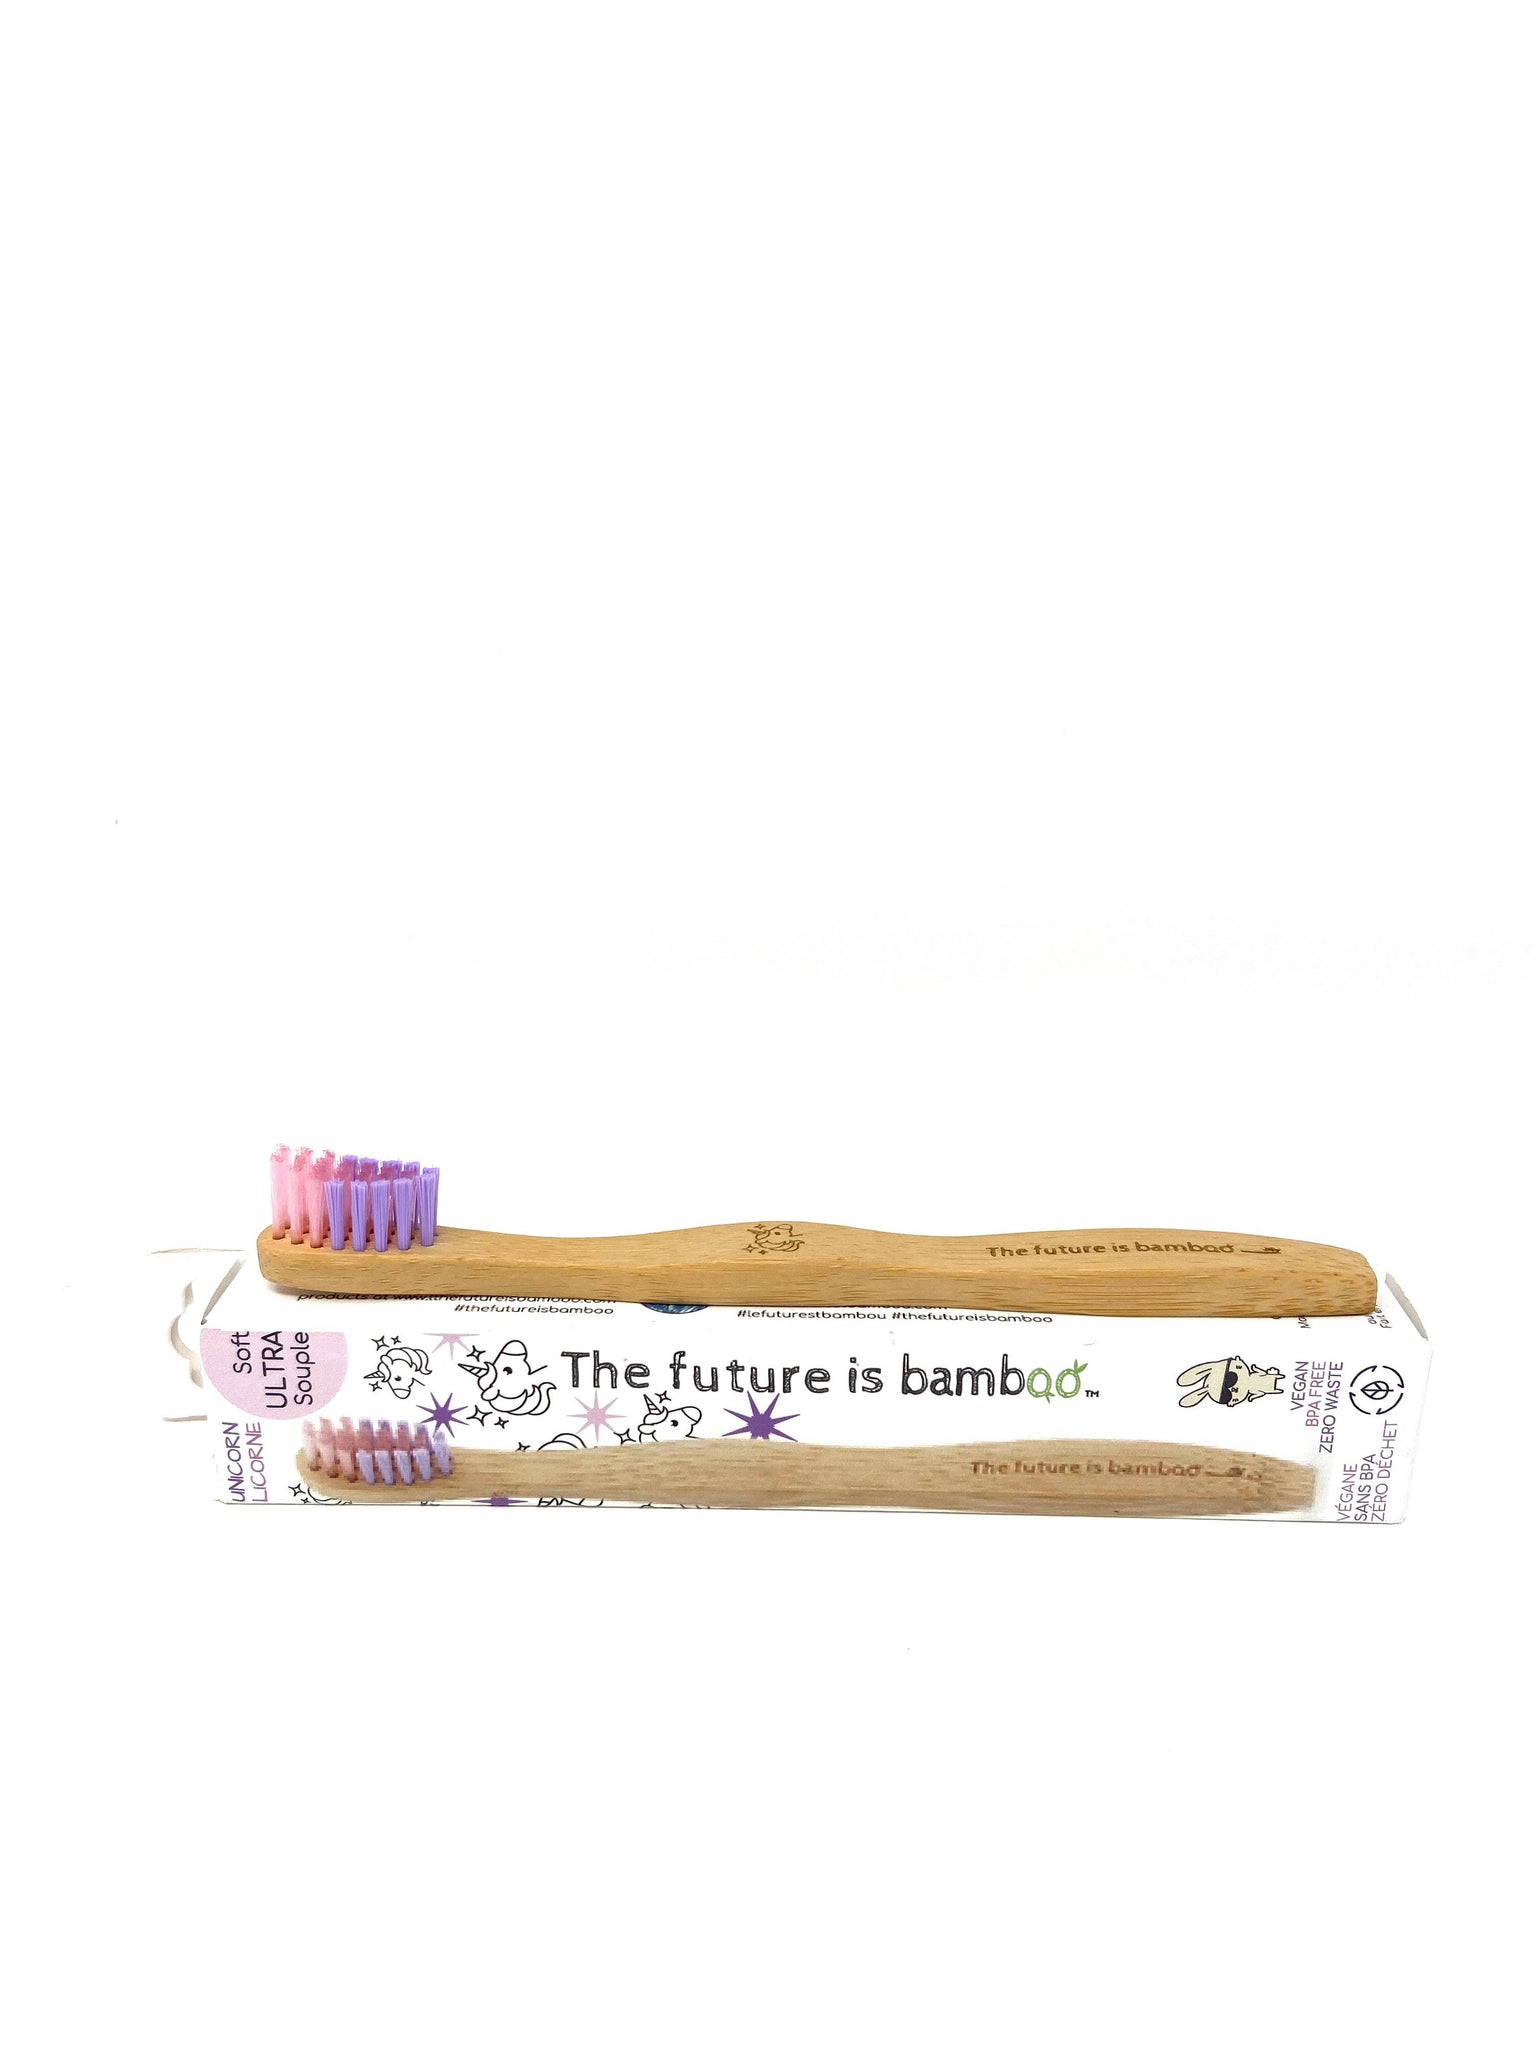 Unicorn Toothbrush - Crunch Natural Parenting is where to buy